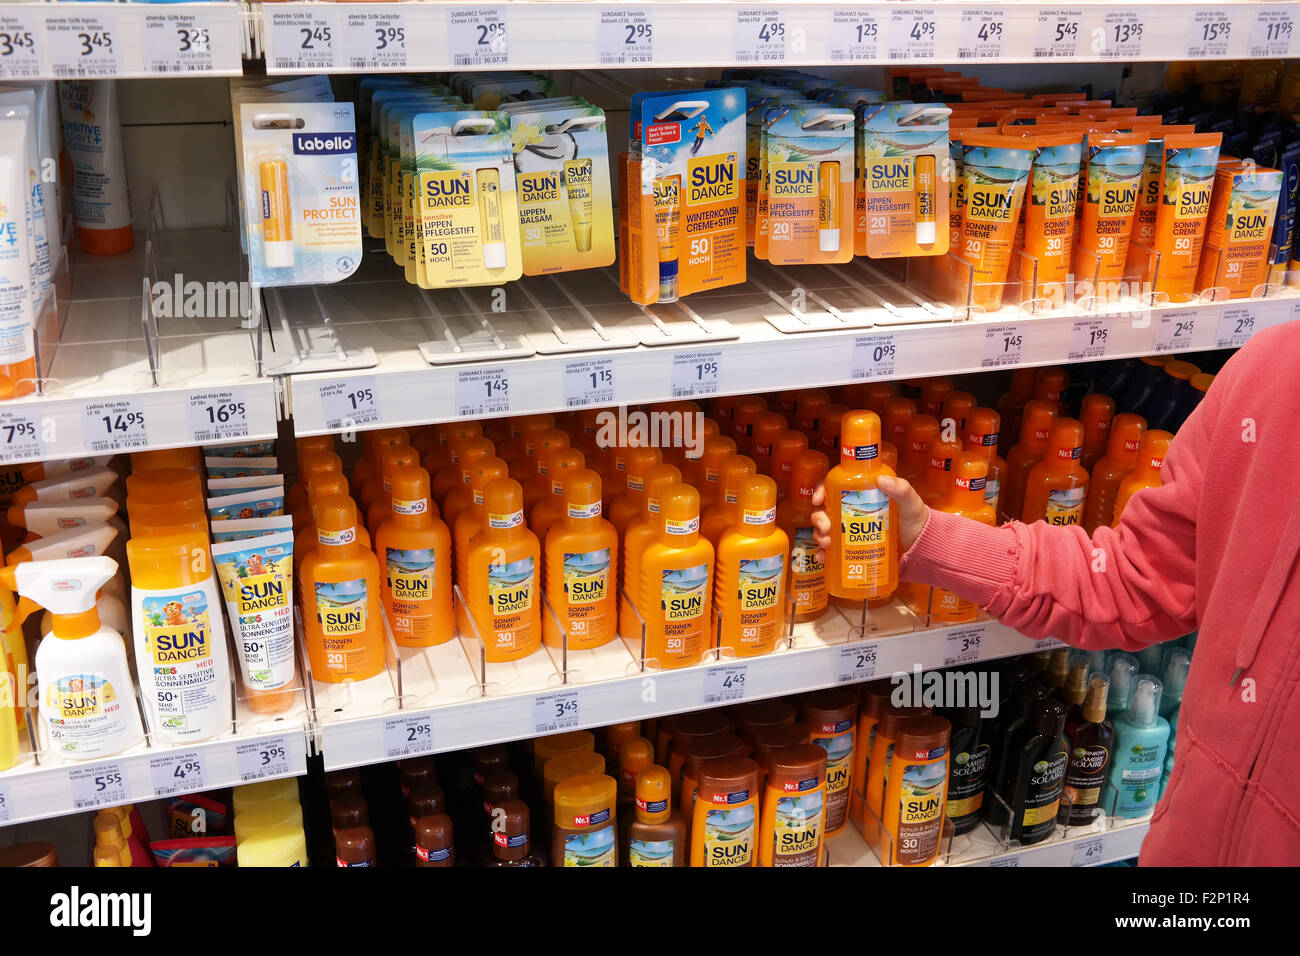 Shelves with home brand sunscreen in a Dm-drogerie markt store. - Stock Image